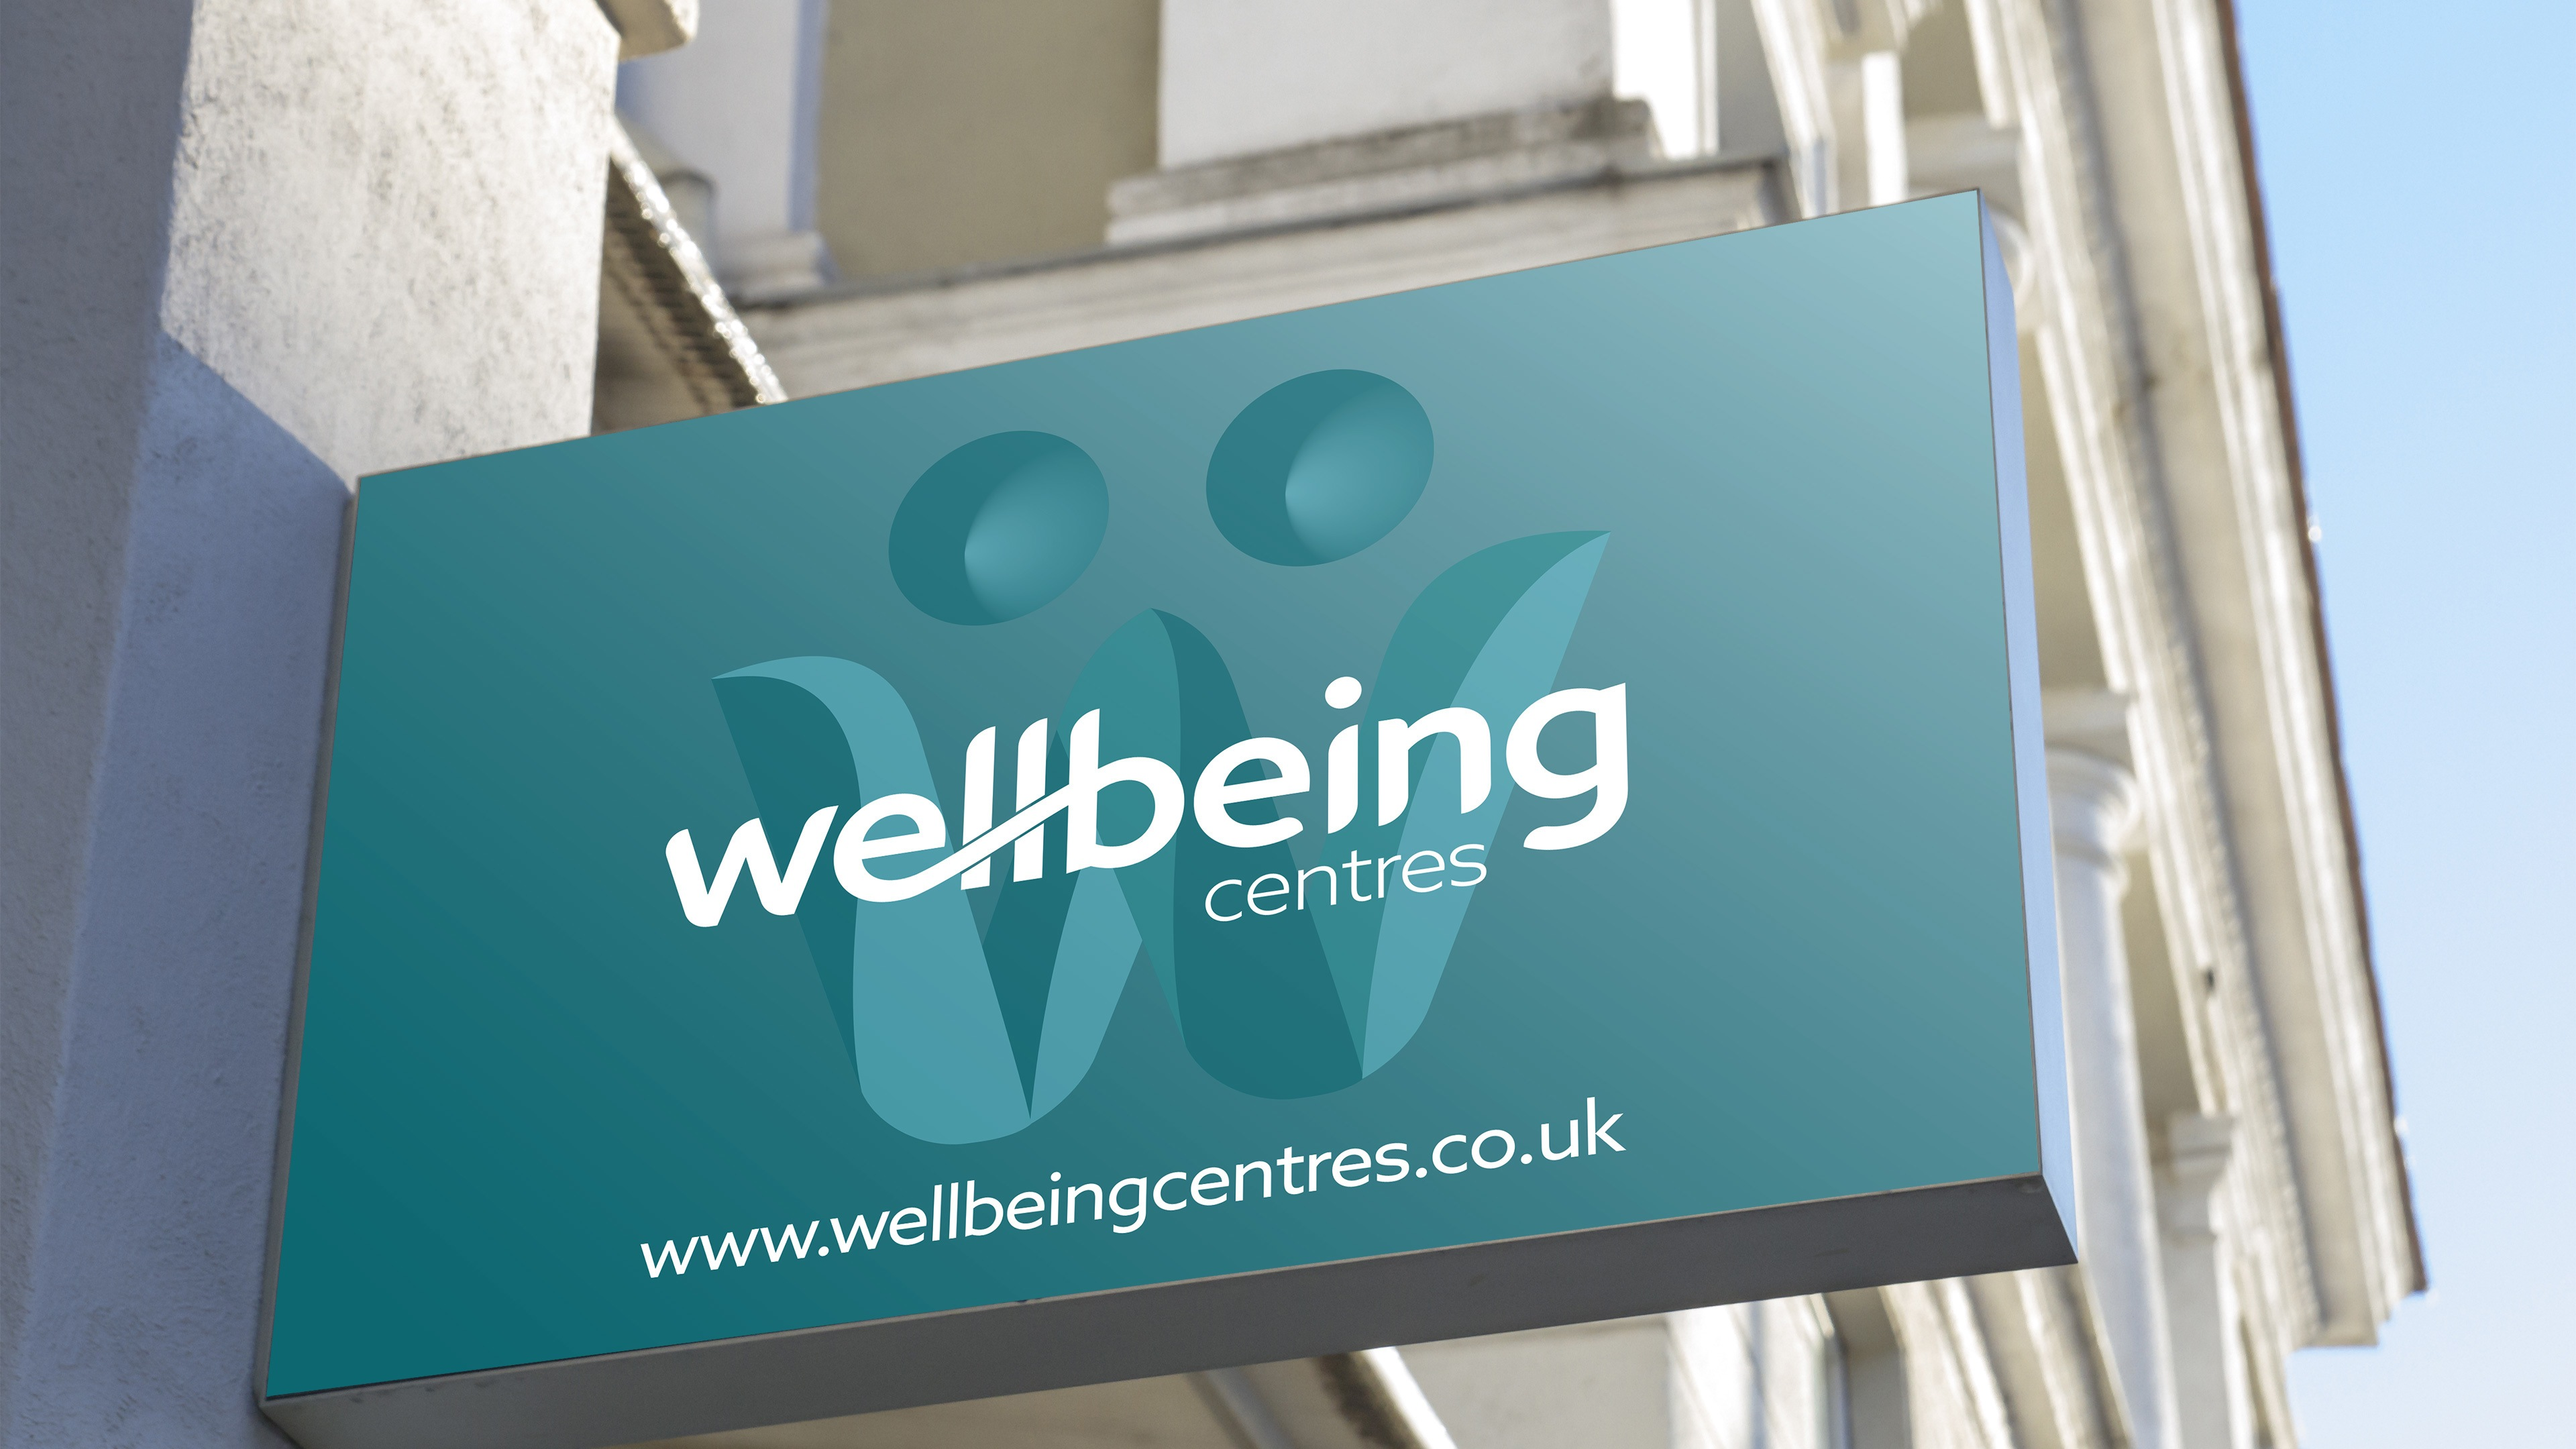 Wellbeing_shop_sign_image.jpg